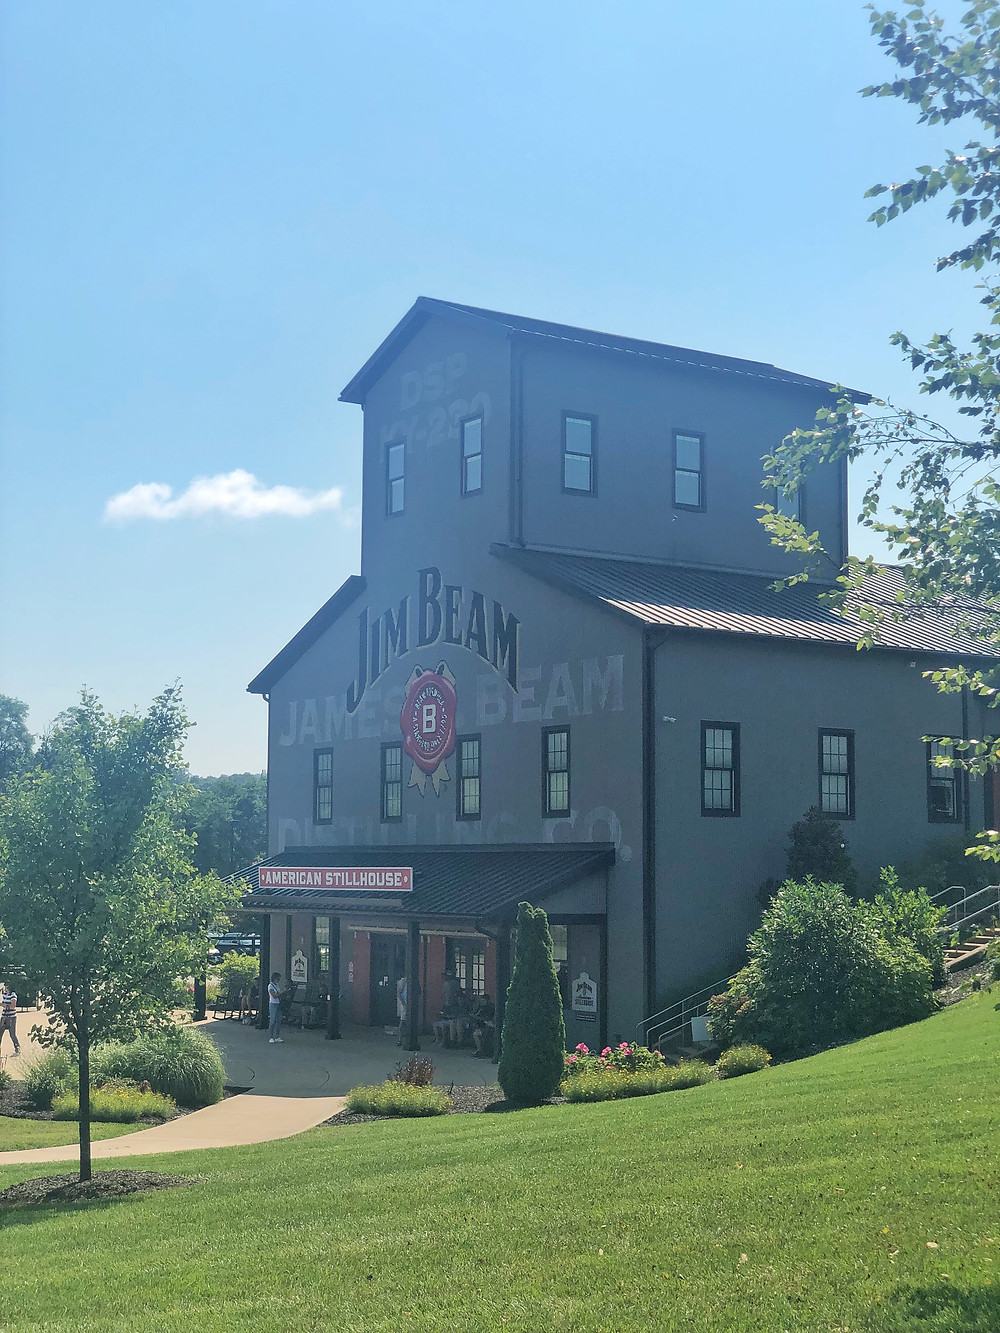 Jim Beam distillery gift shop in Clermont Kentucky, Bourbon Trail travel guide, travel blog, best distillery tour